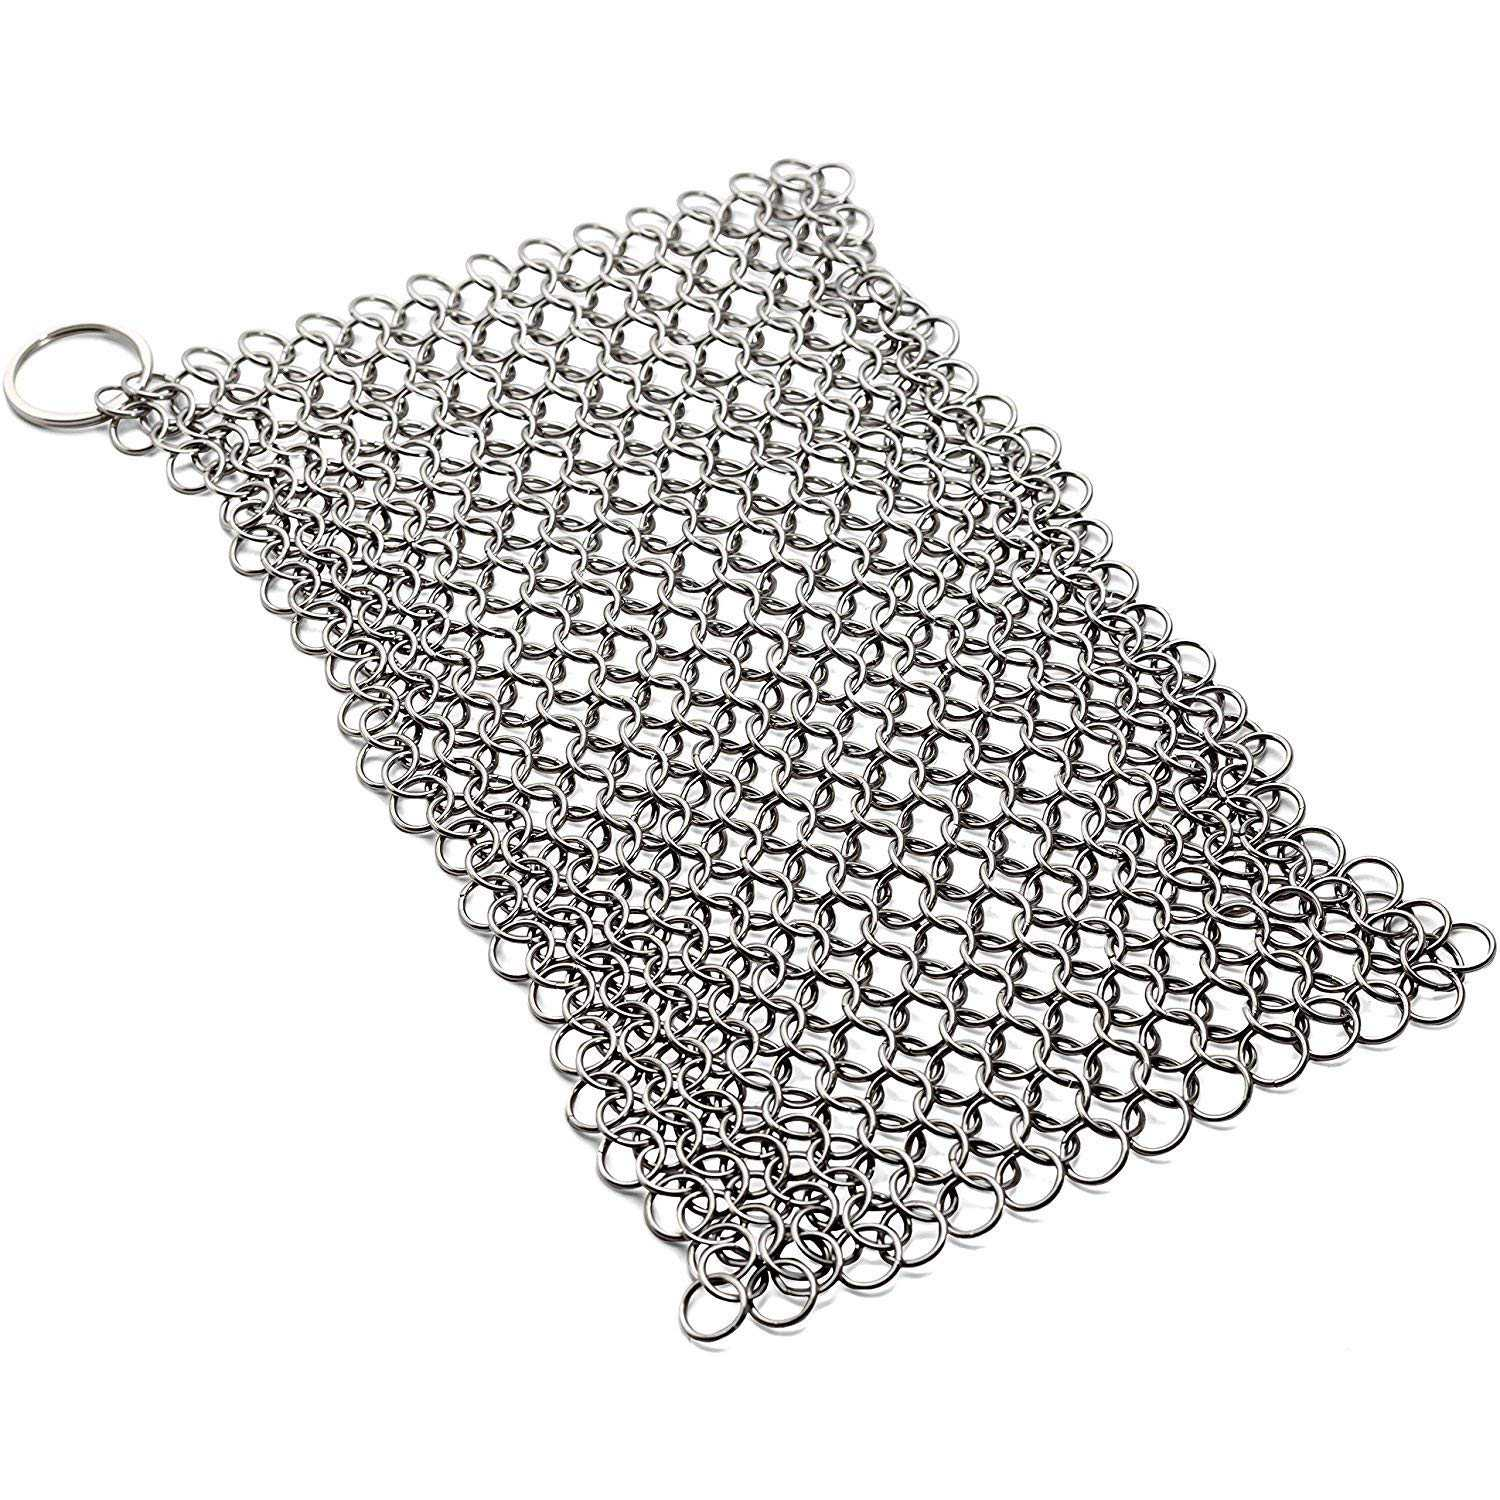 8Inch X 6Inch  Stainless Steel Cast Iron Cleaner 316L Chainmail Scrubber For Cast Iron Pan Pre-Seasoned Pan Dutch Ovens Waffle